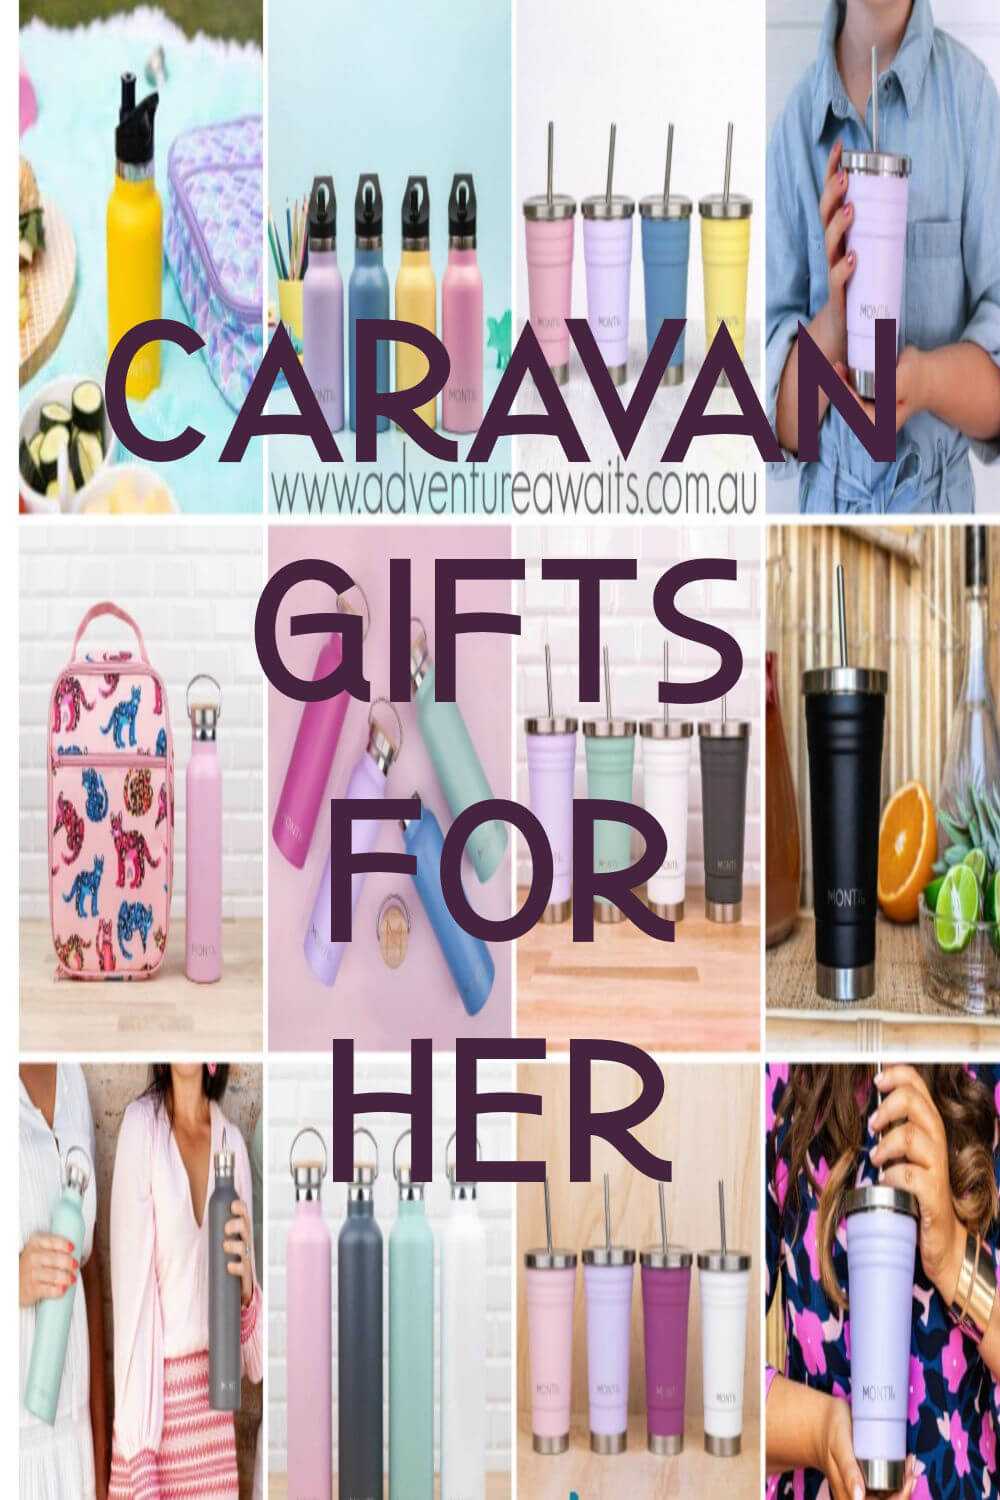 Pinterest Pin of Caravan Gifts for Her Showing Travel Cups